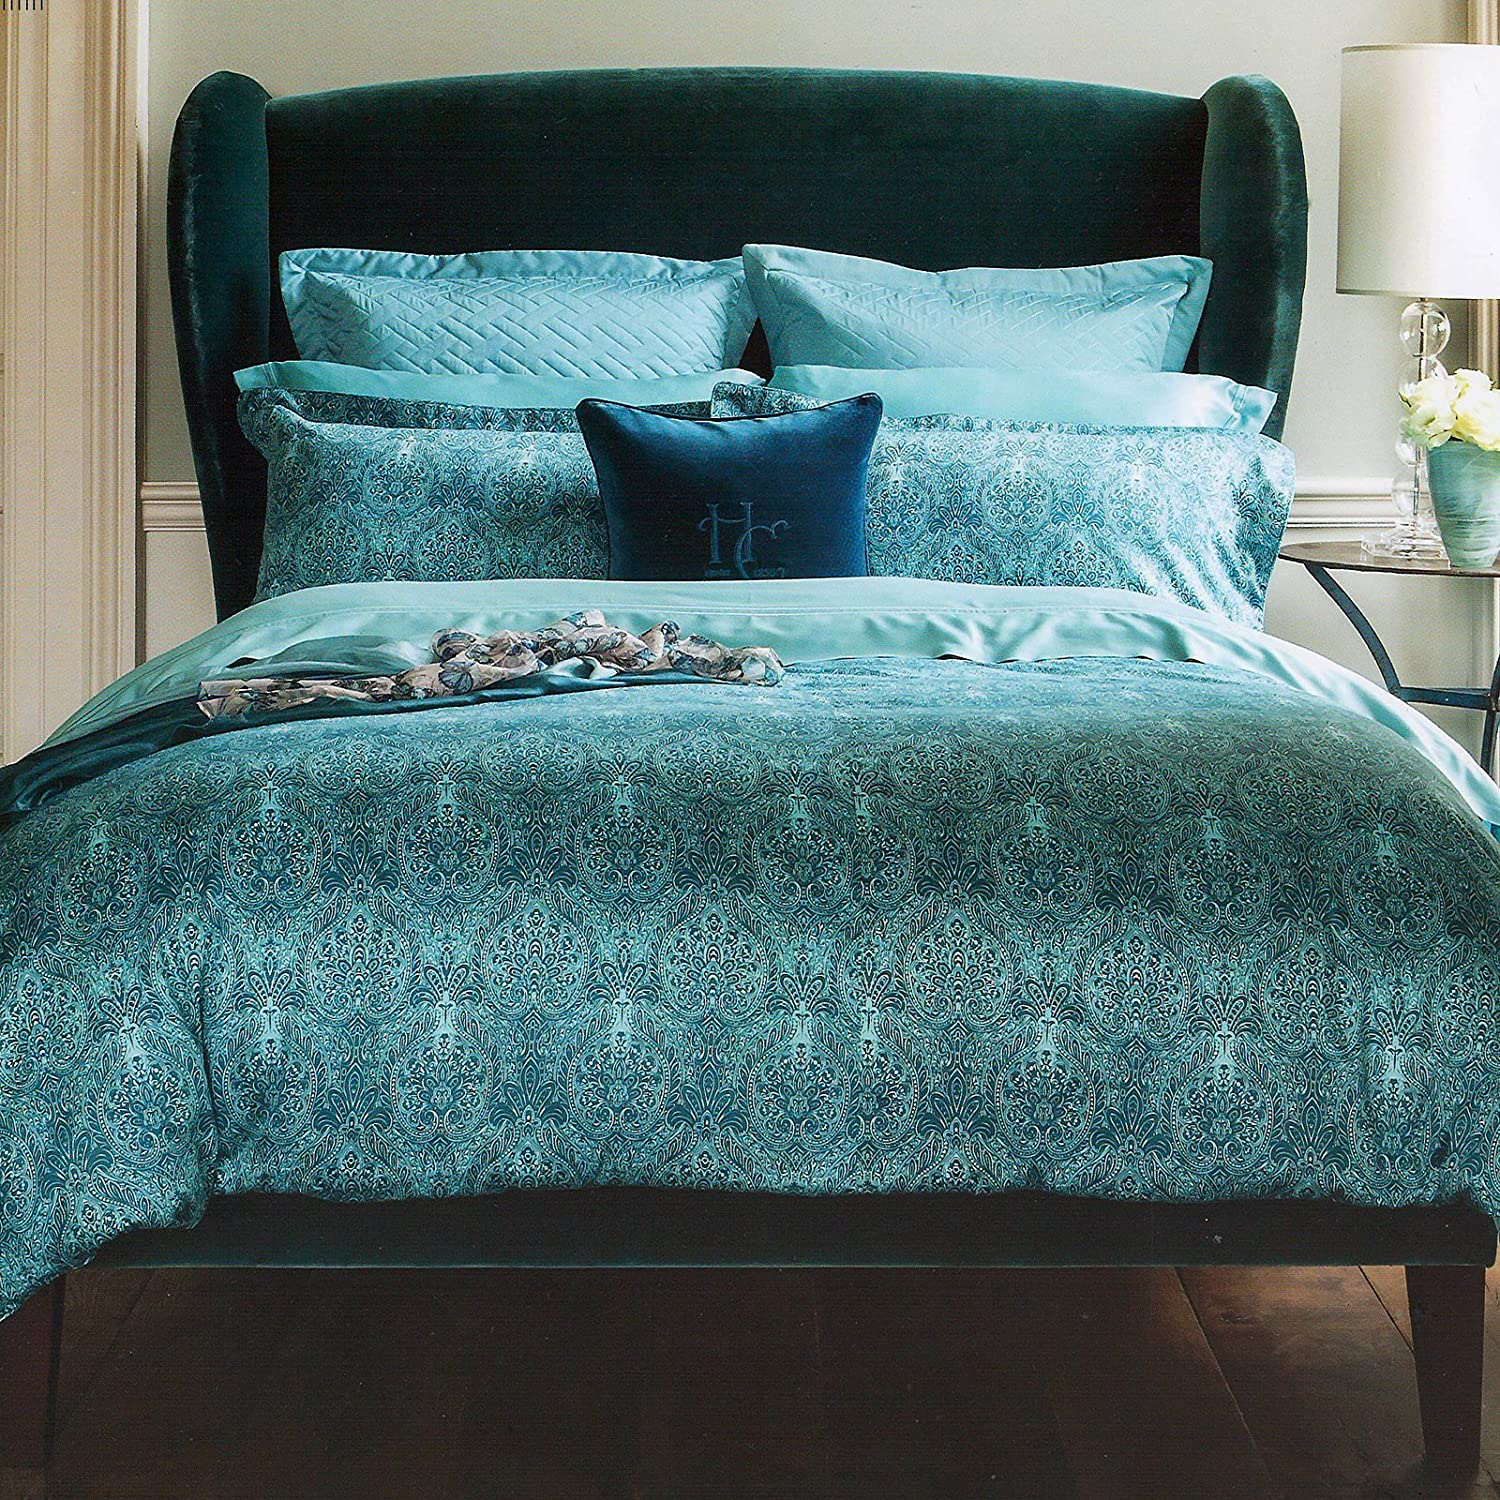 colour stylish cover diamante luxury ekm asp teal bedding matallic cream glamour floral bed beautiful p duvet